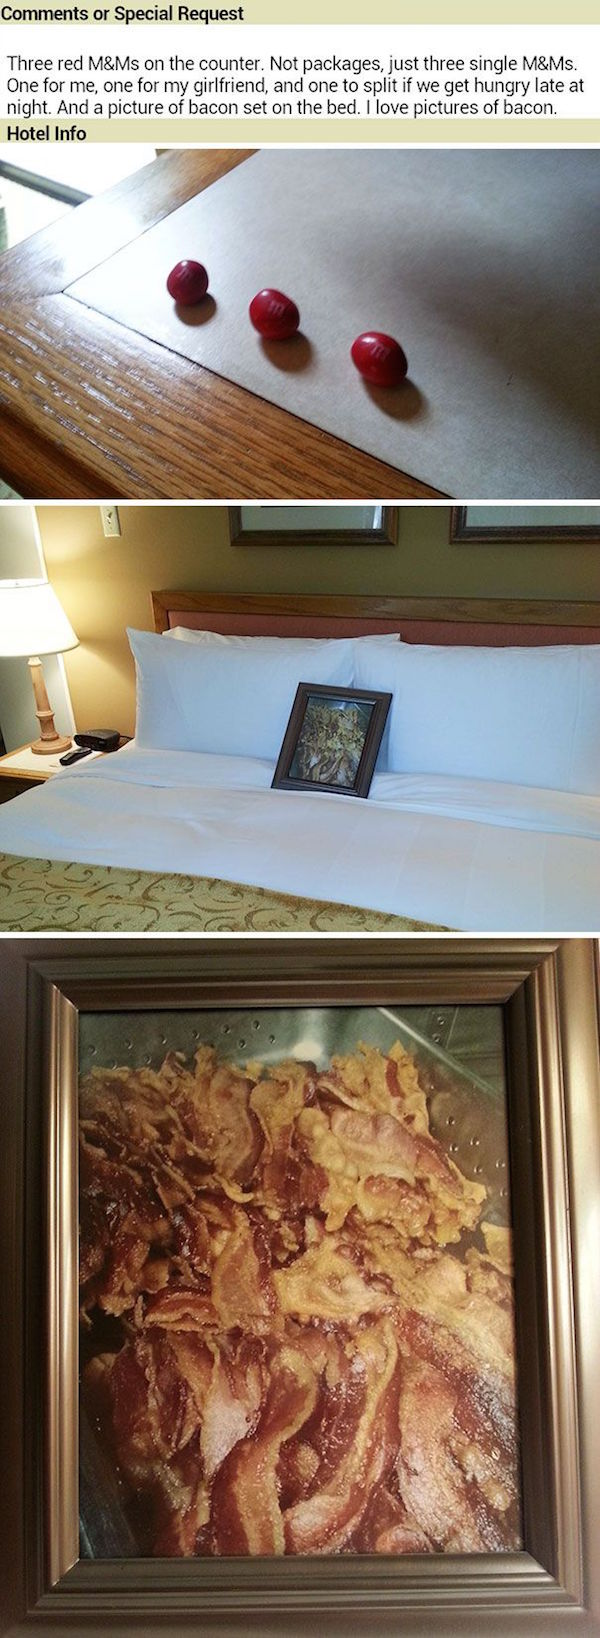 Let S All Get Real Weird With These Hilarious Hotel Requests